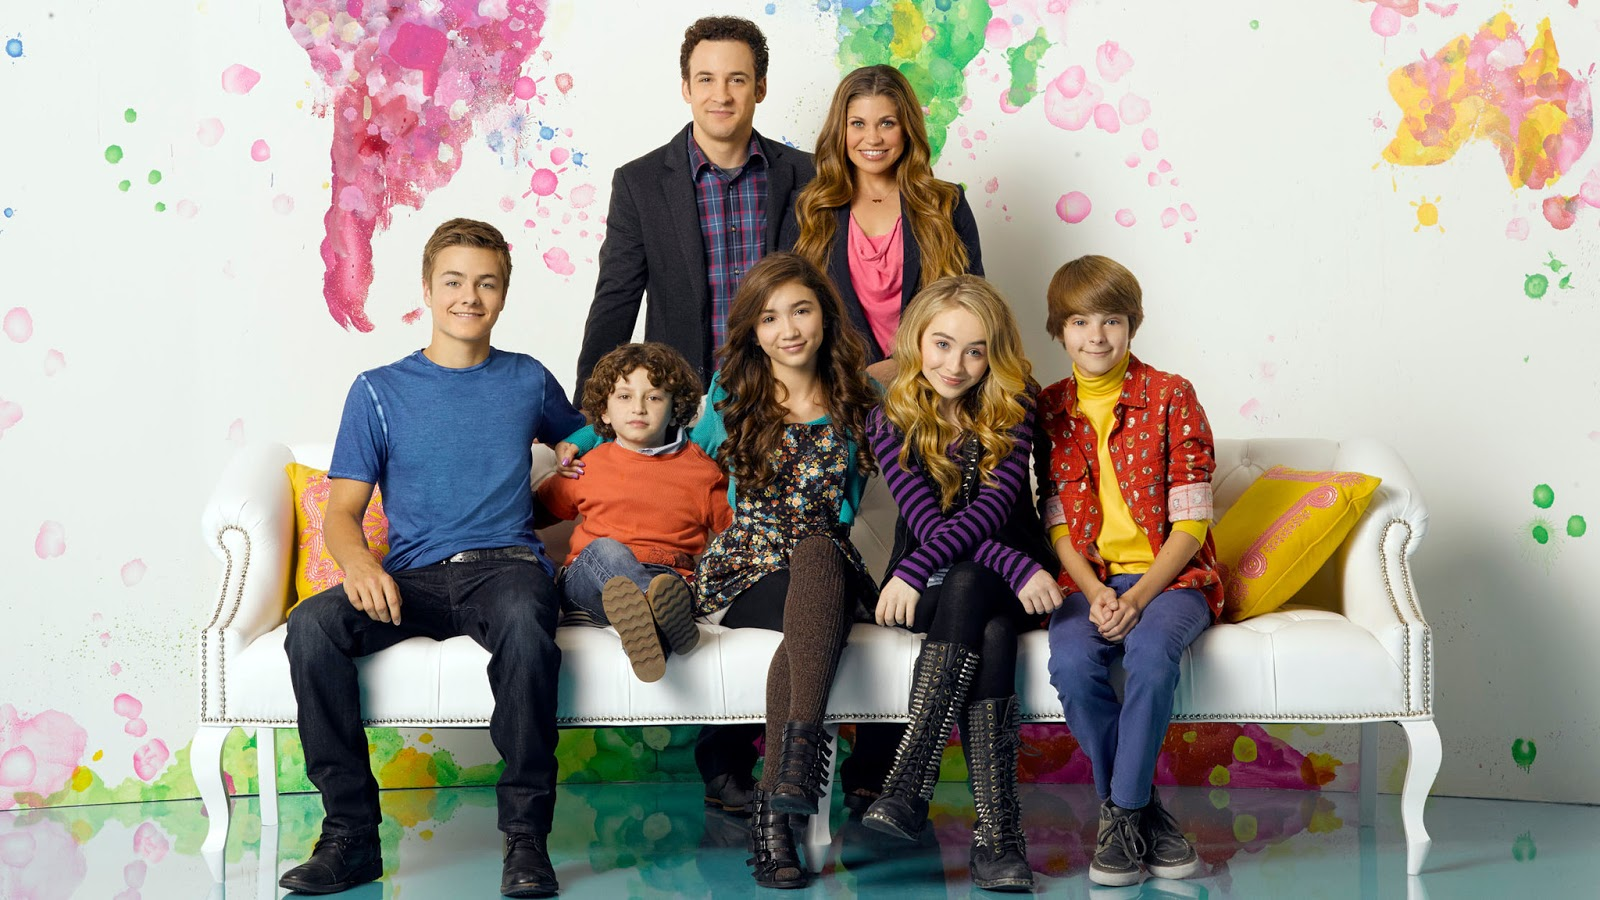 Girl Meets World - Episode 1.01 - Pilot - Promotional Photos and Synopsis